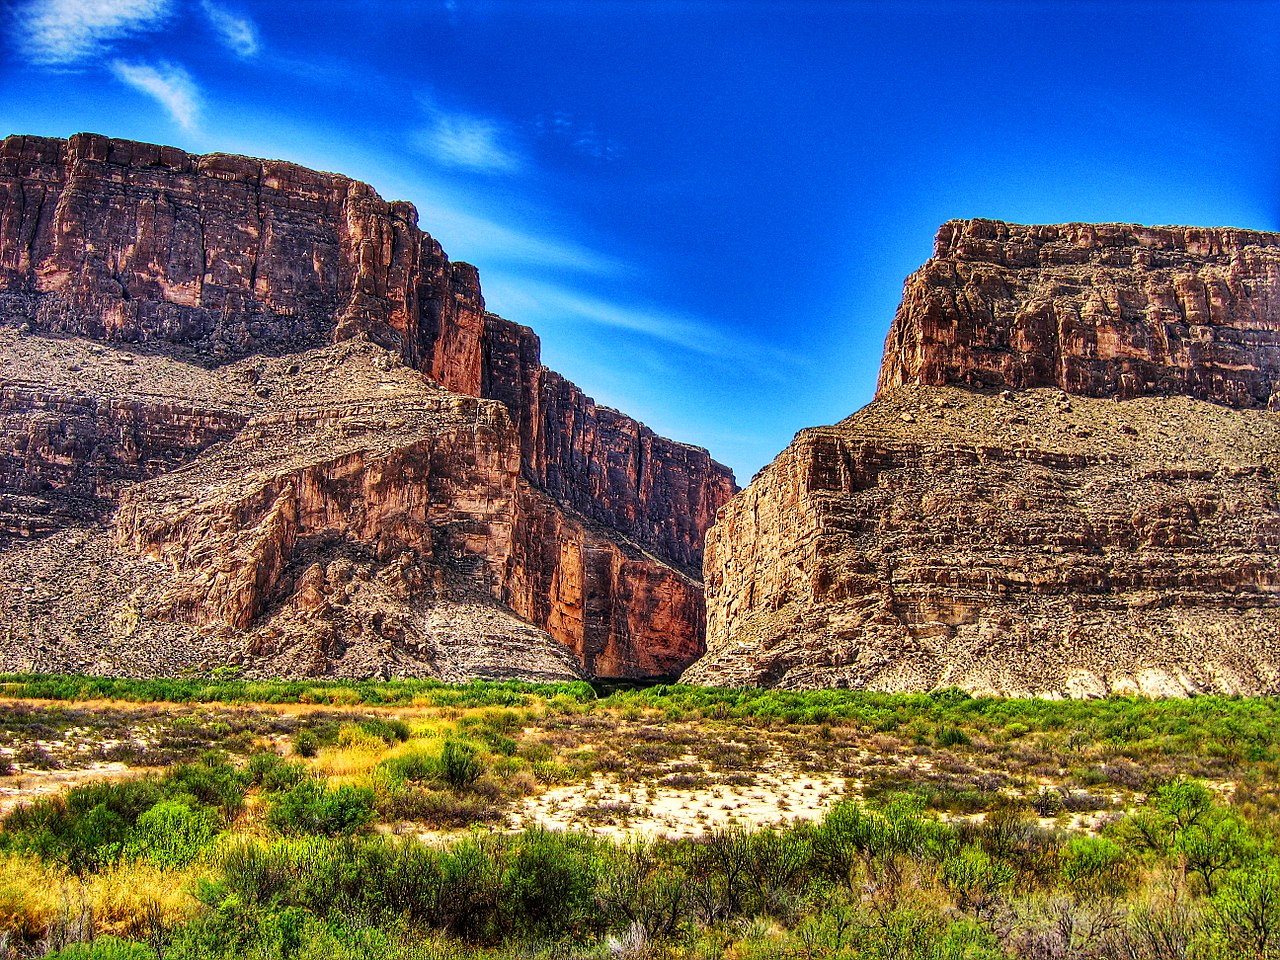 Santa Elena Canyon is majestic, towering canyon walls are much taller than in Colorado Canyon upriver a few miles.